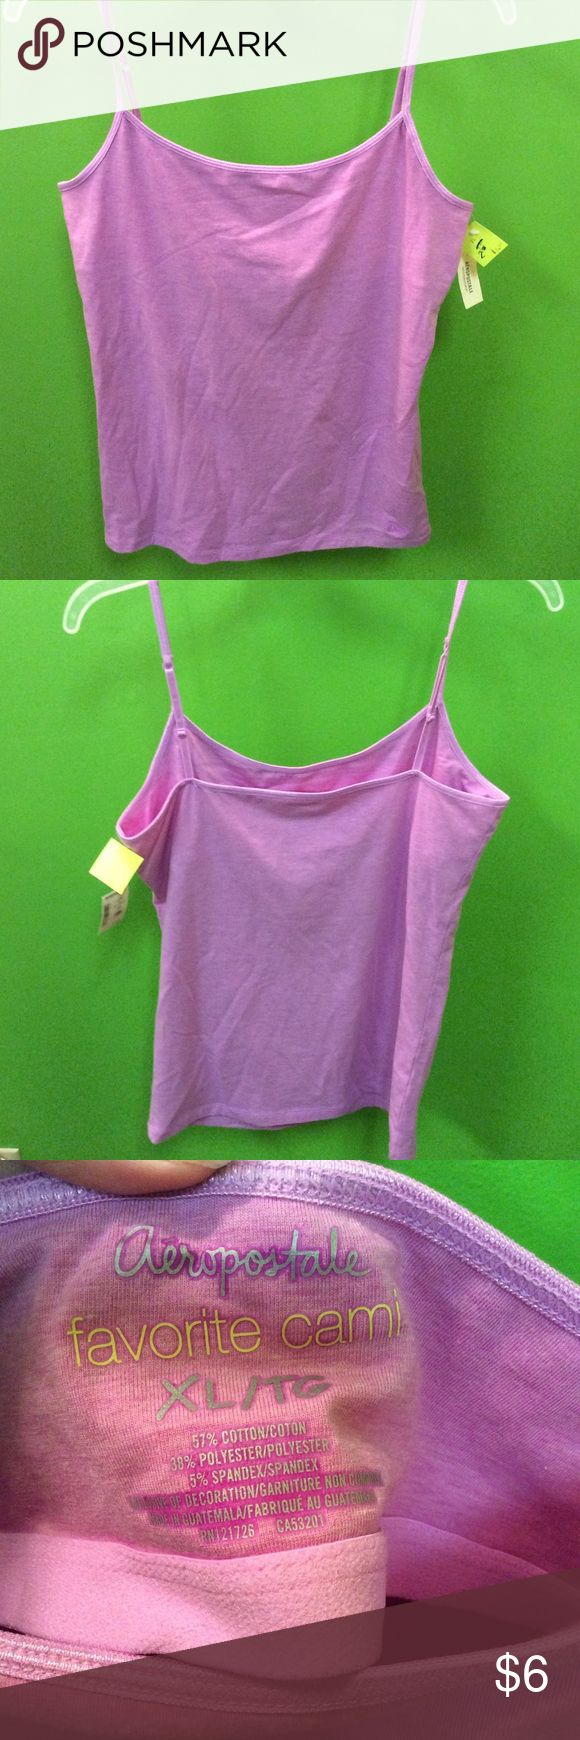 NWT Aeropostale women's purple Cami size XL New with tags Aeropostale cute light purple cami Aeropostale Tops Tank Tops